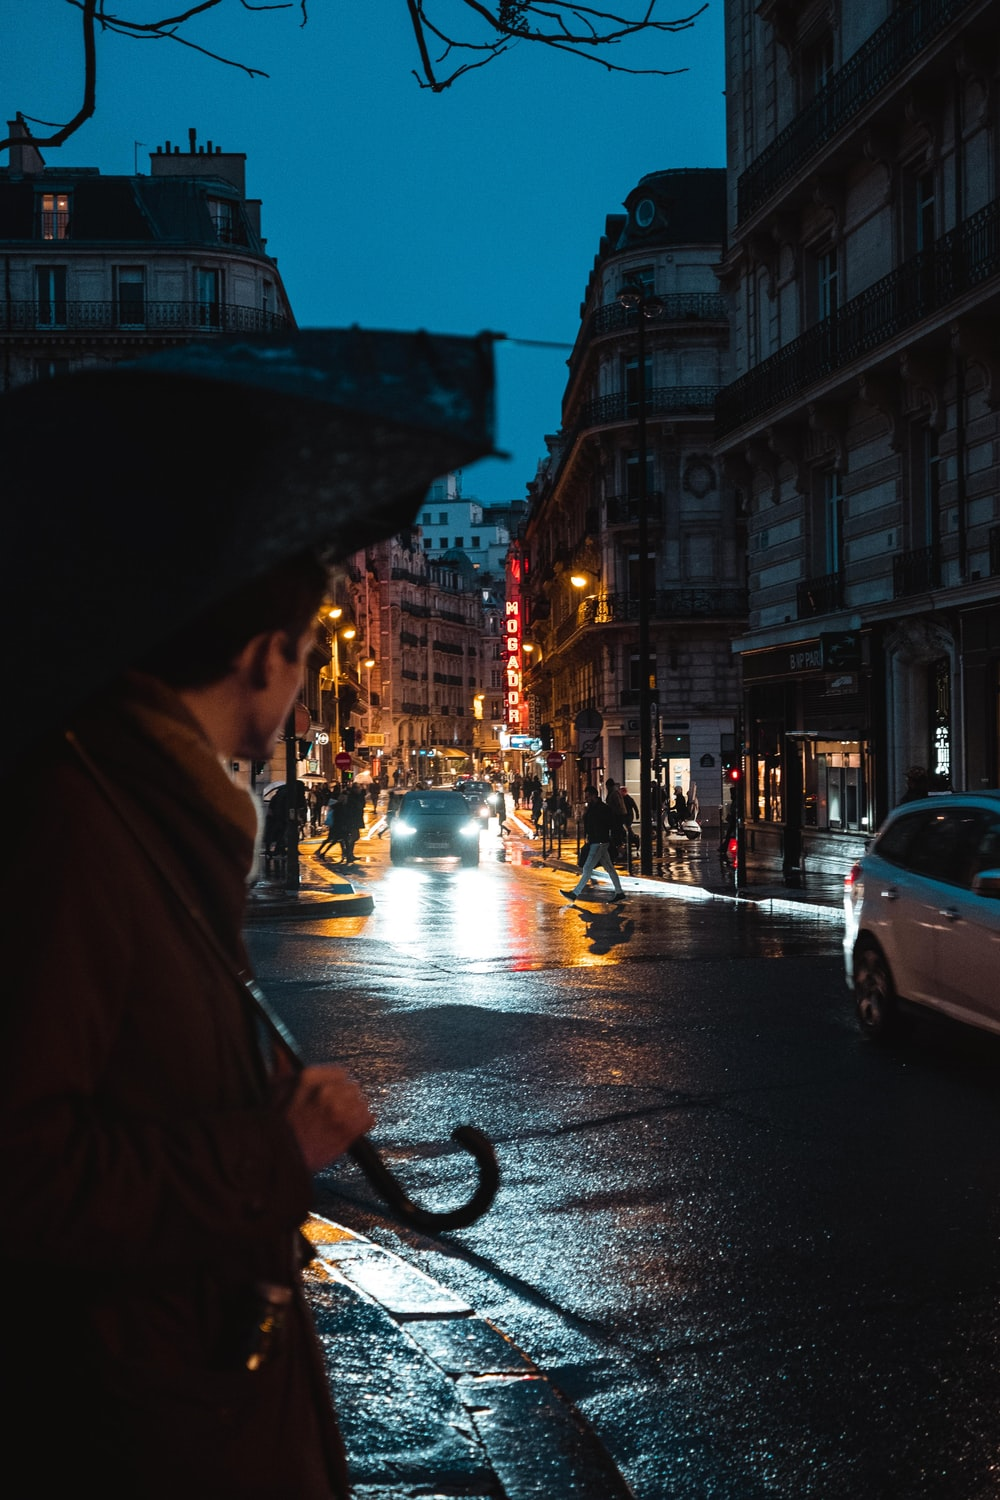 person in brown coat holding umbrella walking on sidewalk during night time